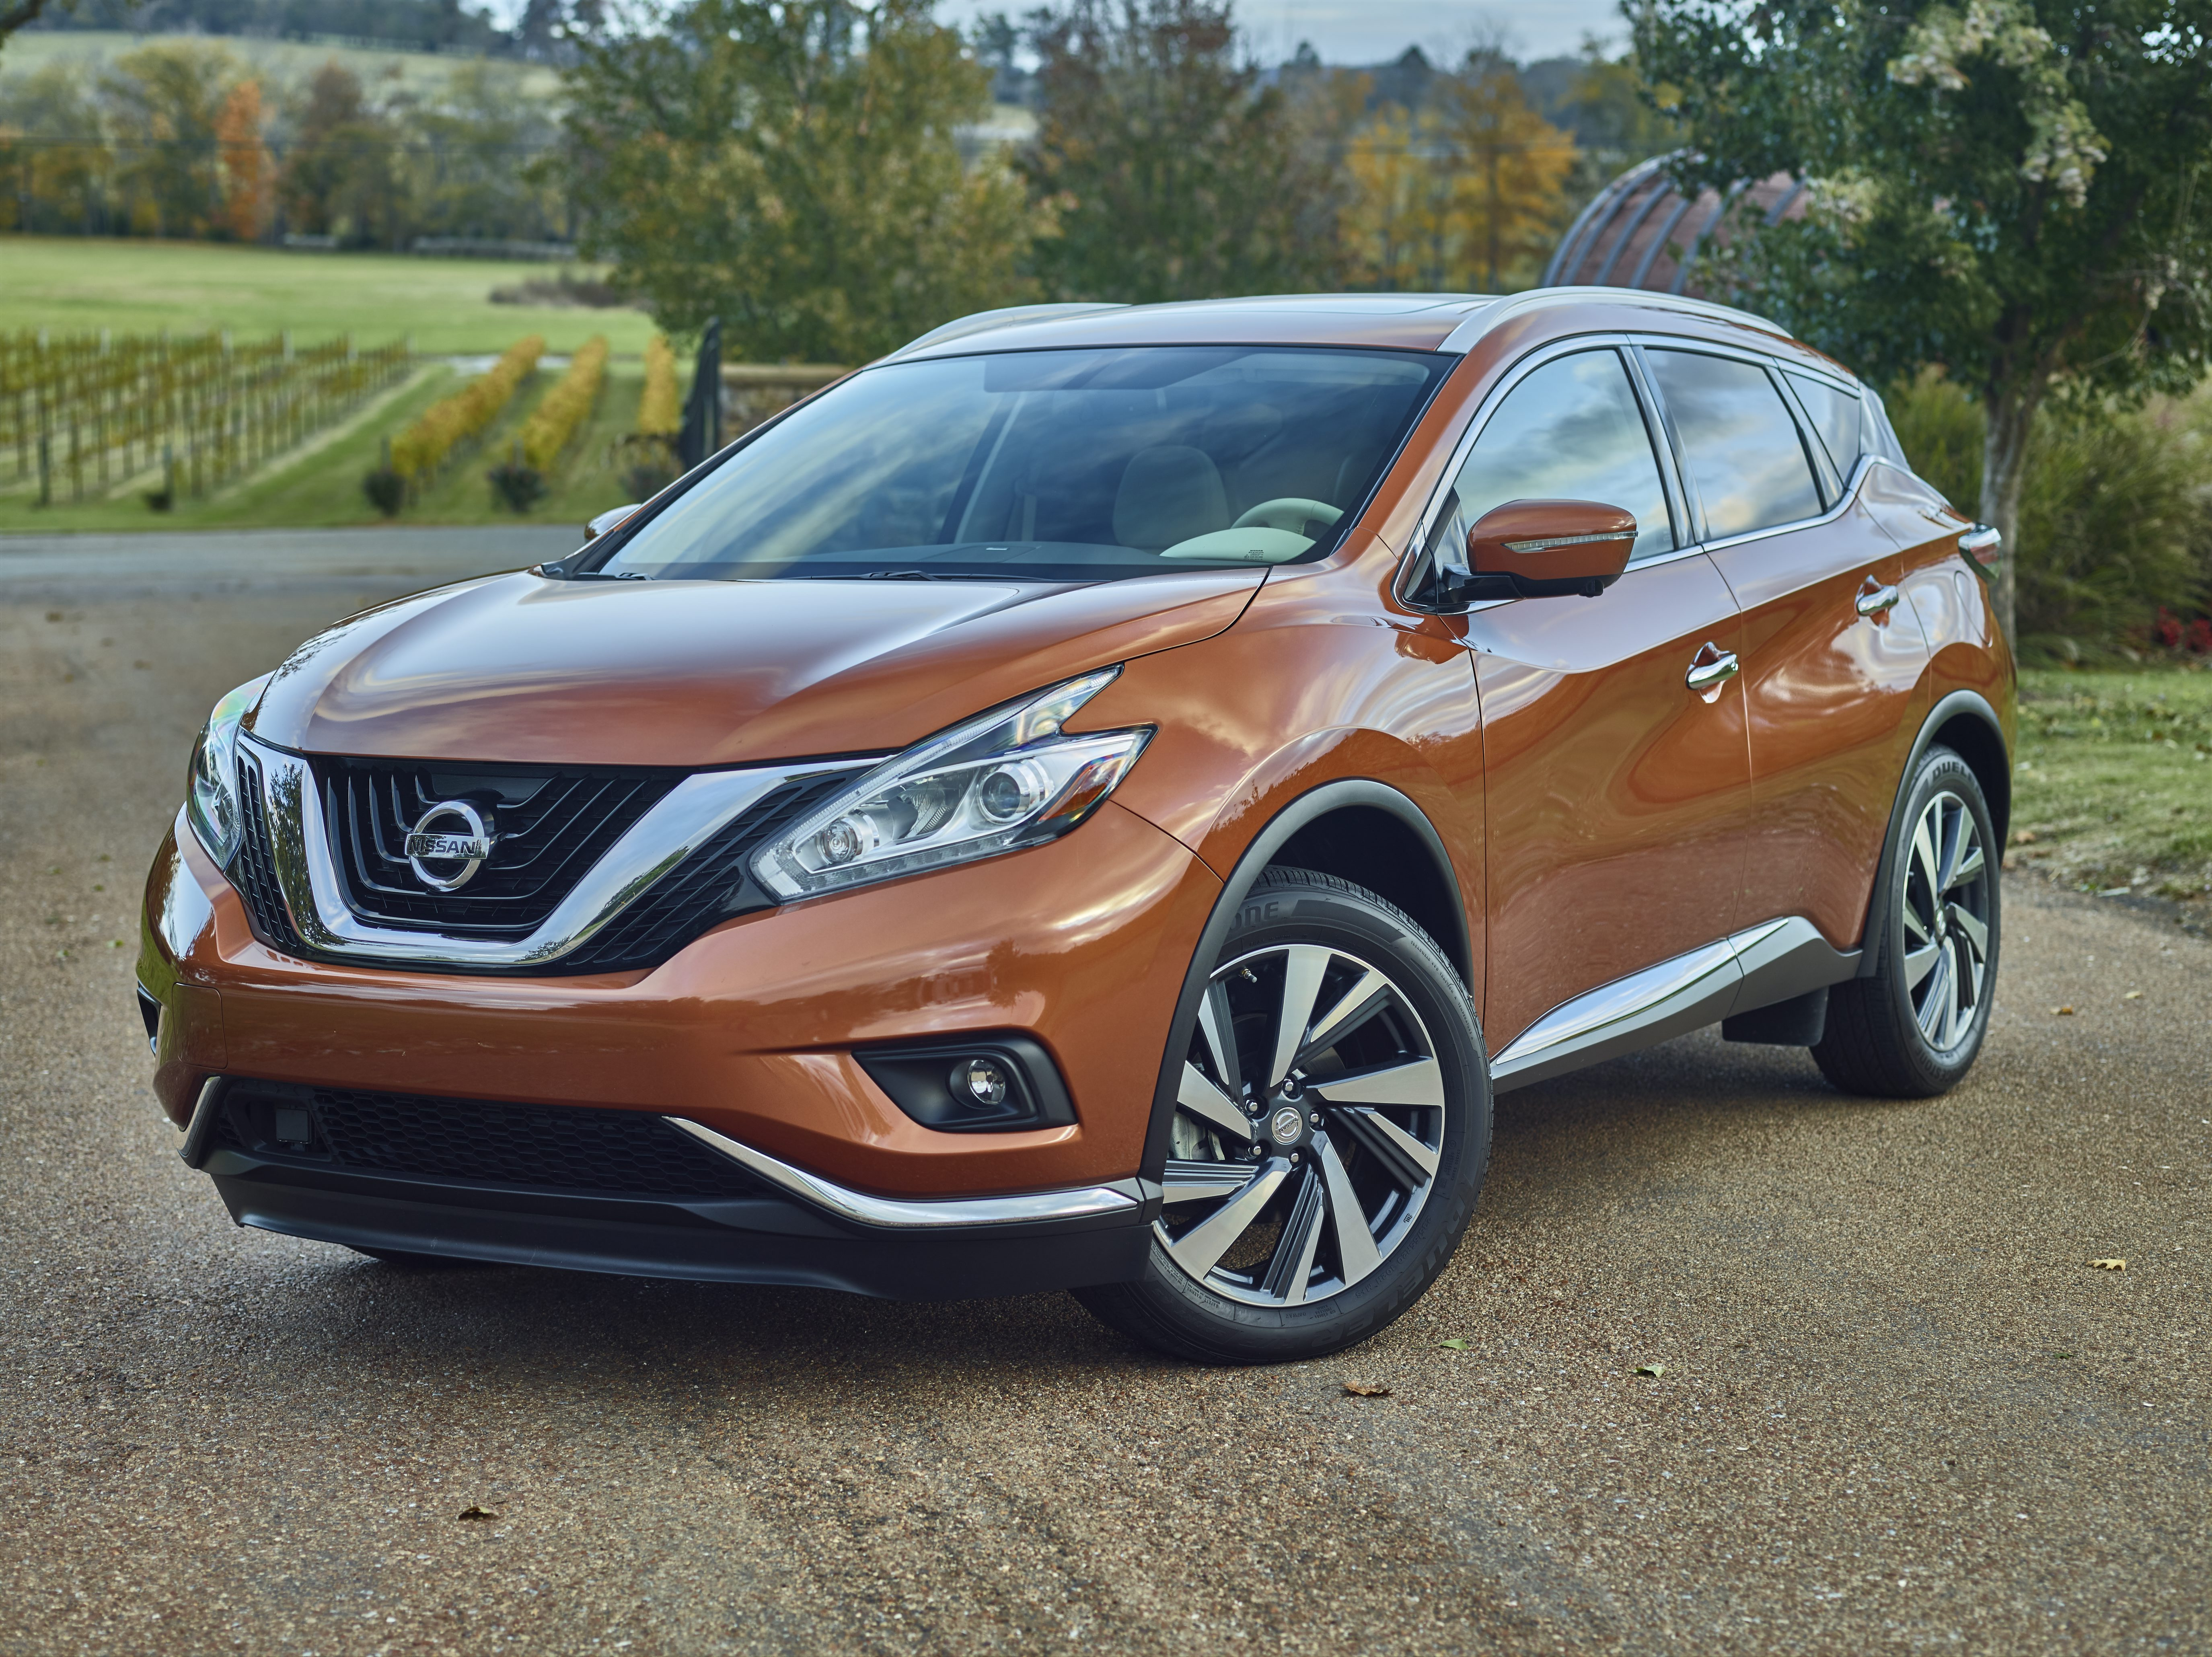 offers front rogue nissan propilot three semi assist quarters news adds tech autonomous select